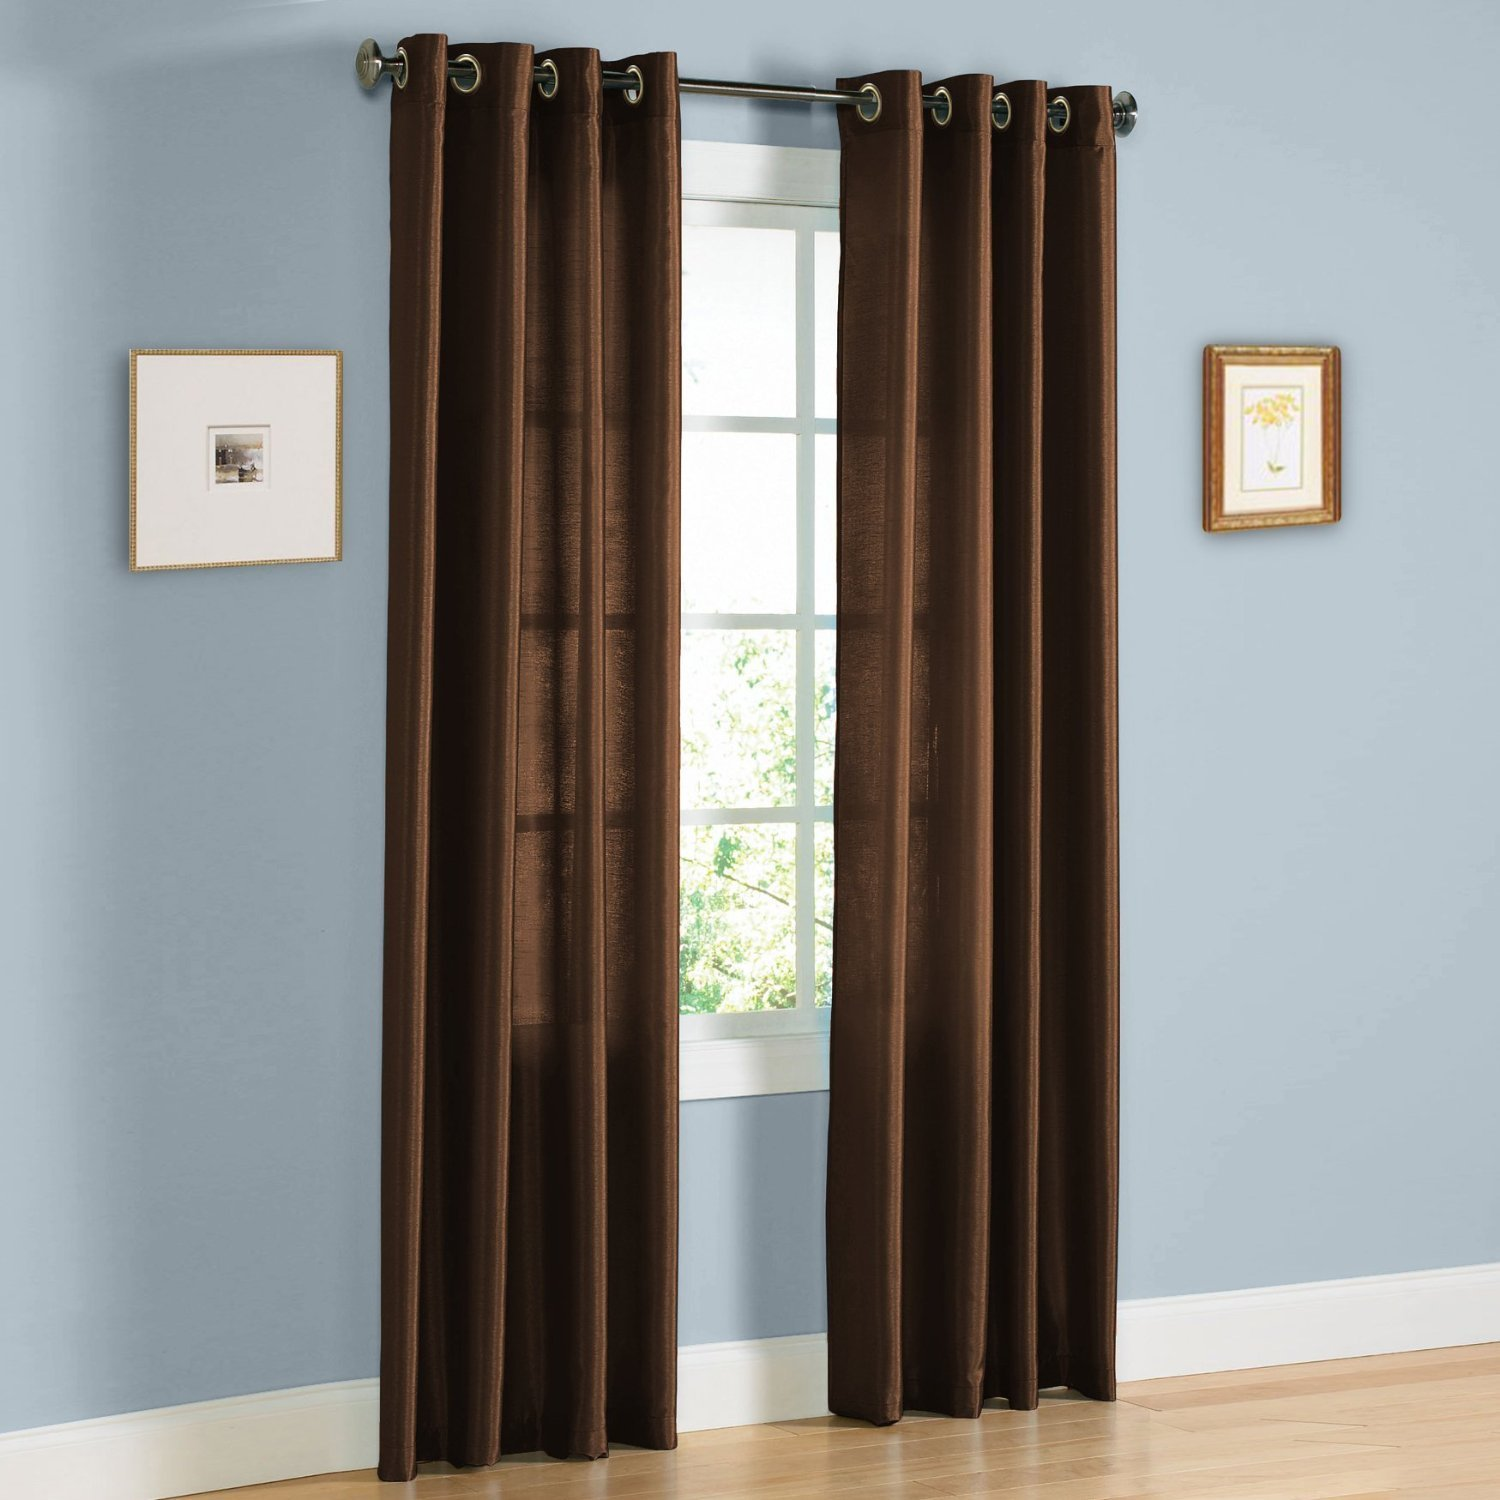 "1 PANEL MIRA  SOLID BROWN COFFEE SEMI SHEER WINDOW FAUX SILK ANTIQUE BRONZE GROMMETS CURTAIN DRAPES 55 WIDE X 63"" LENGTH"